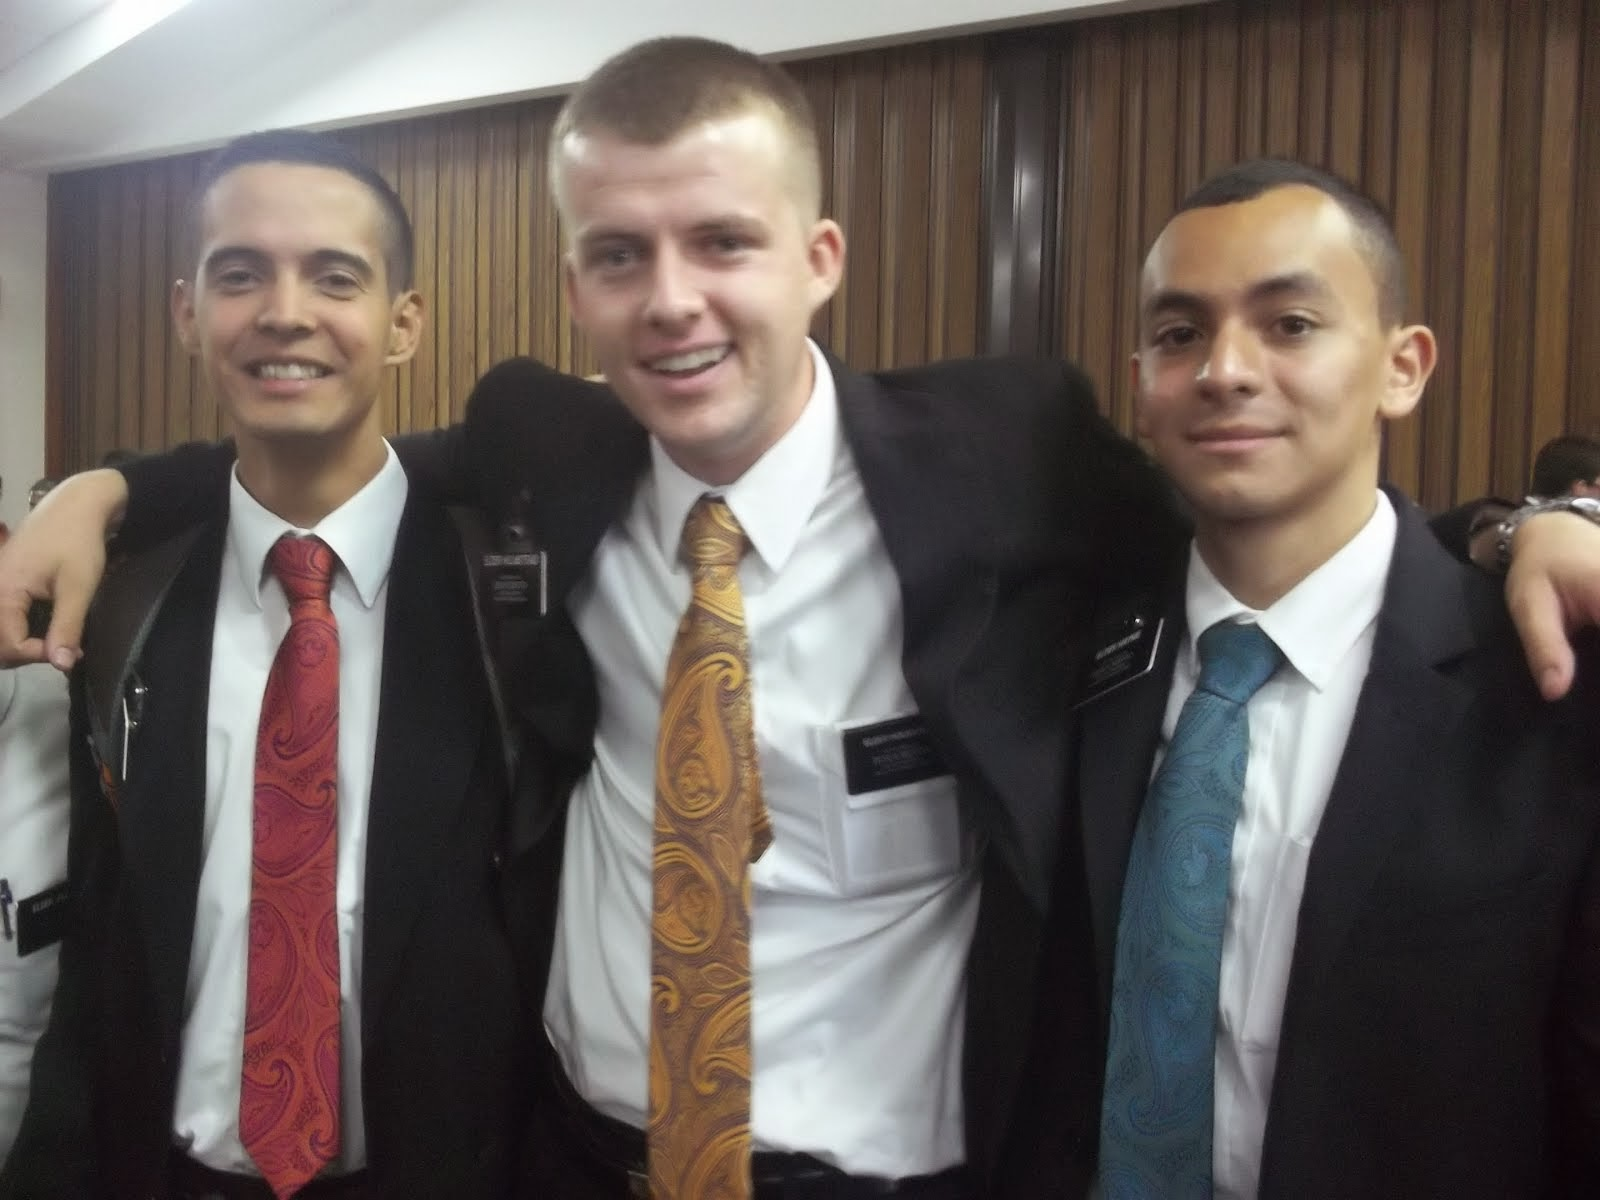 Elder Haynie and Zone leaders